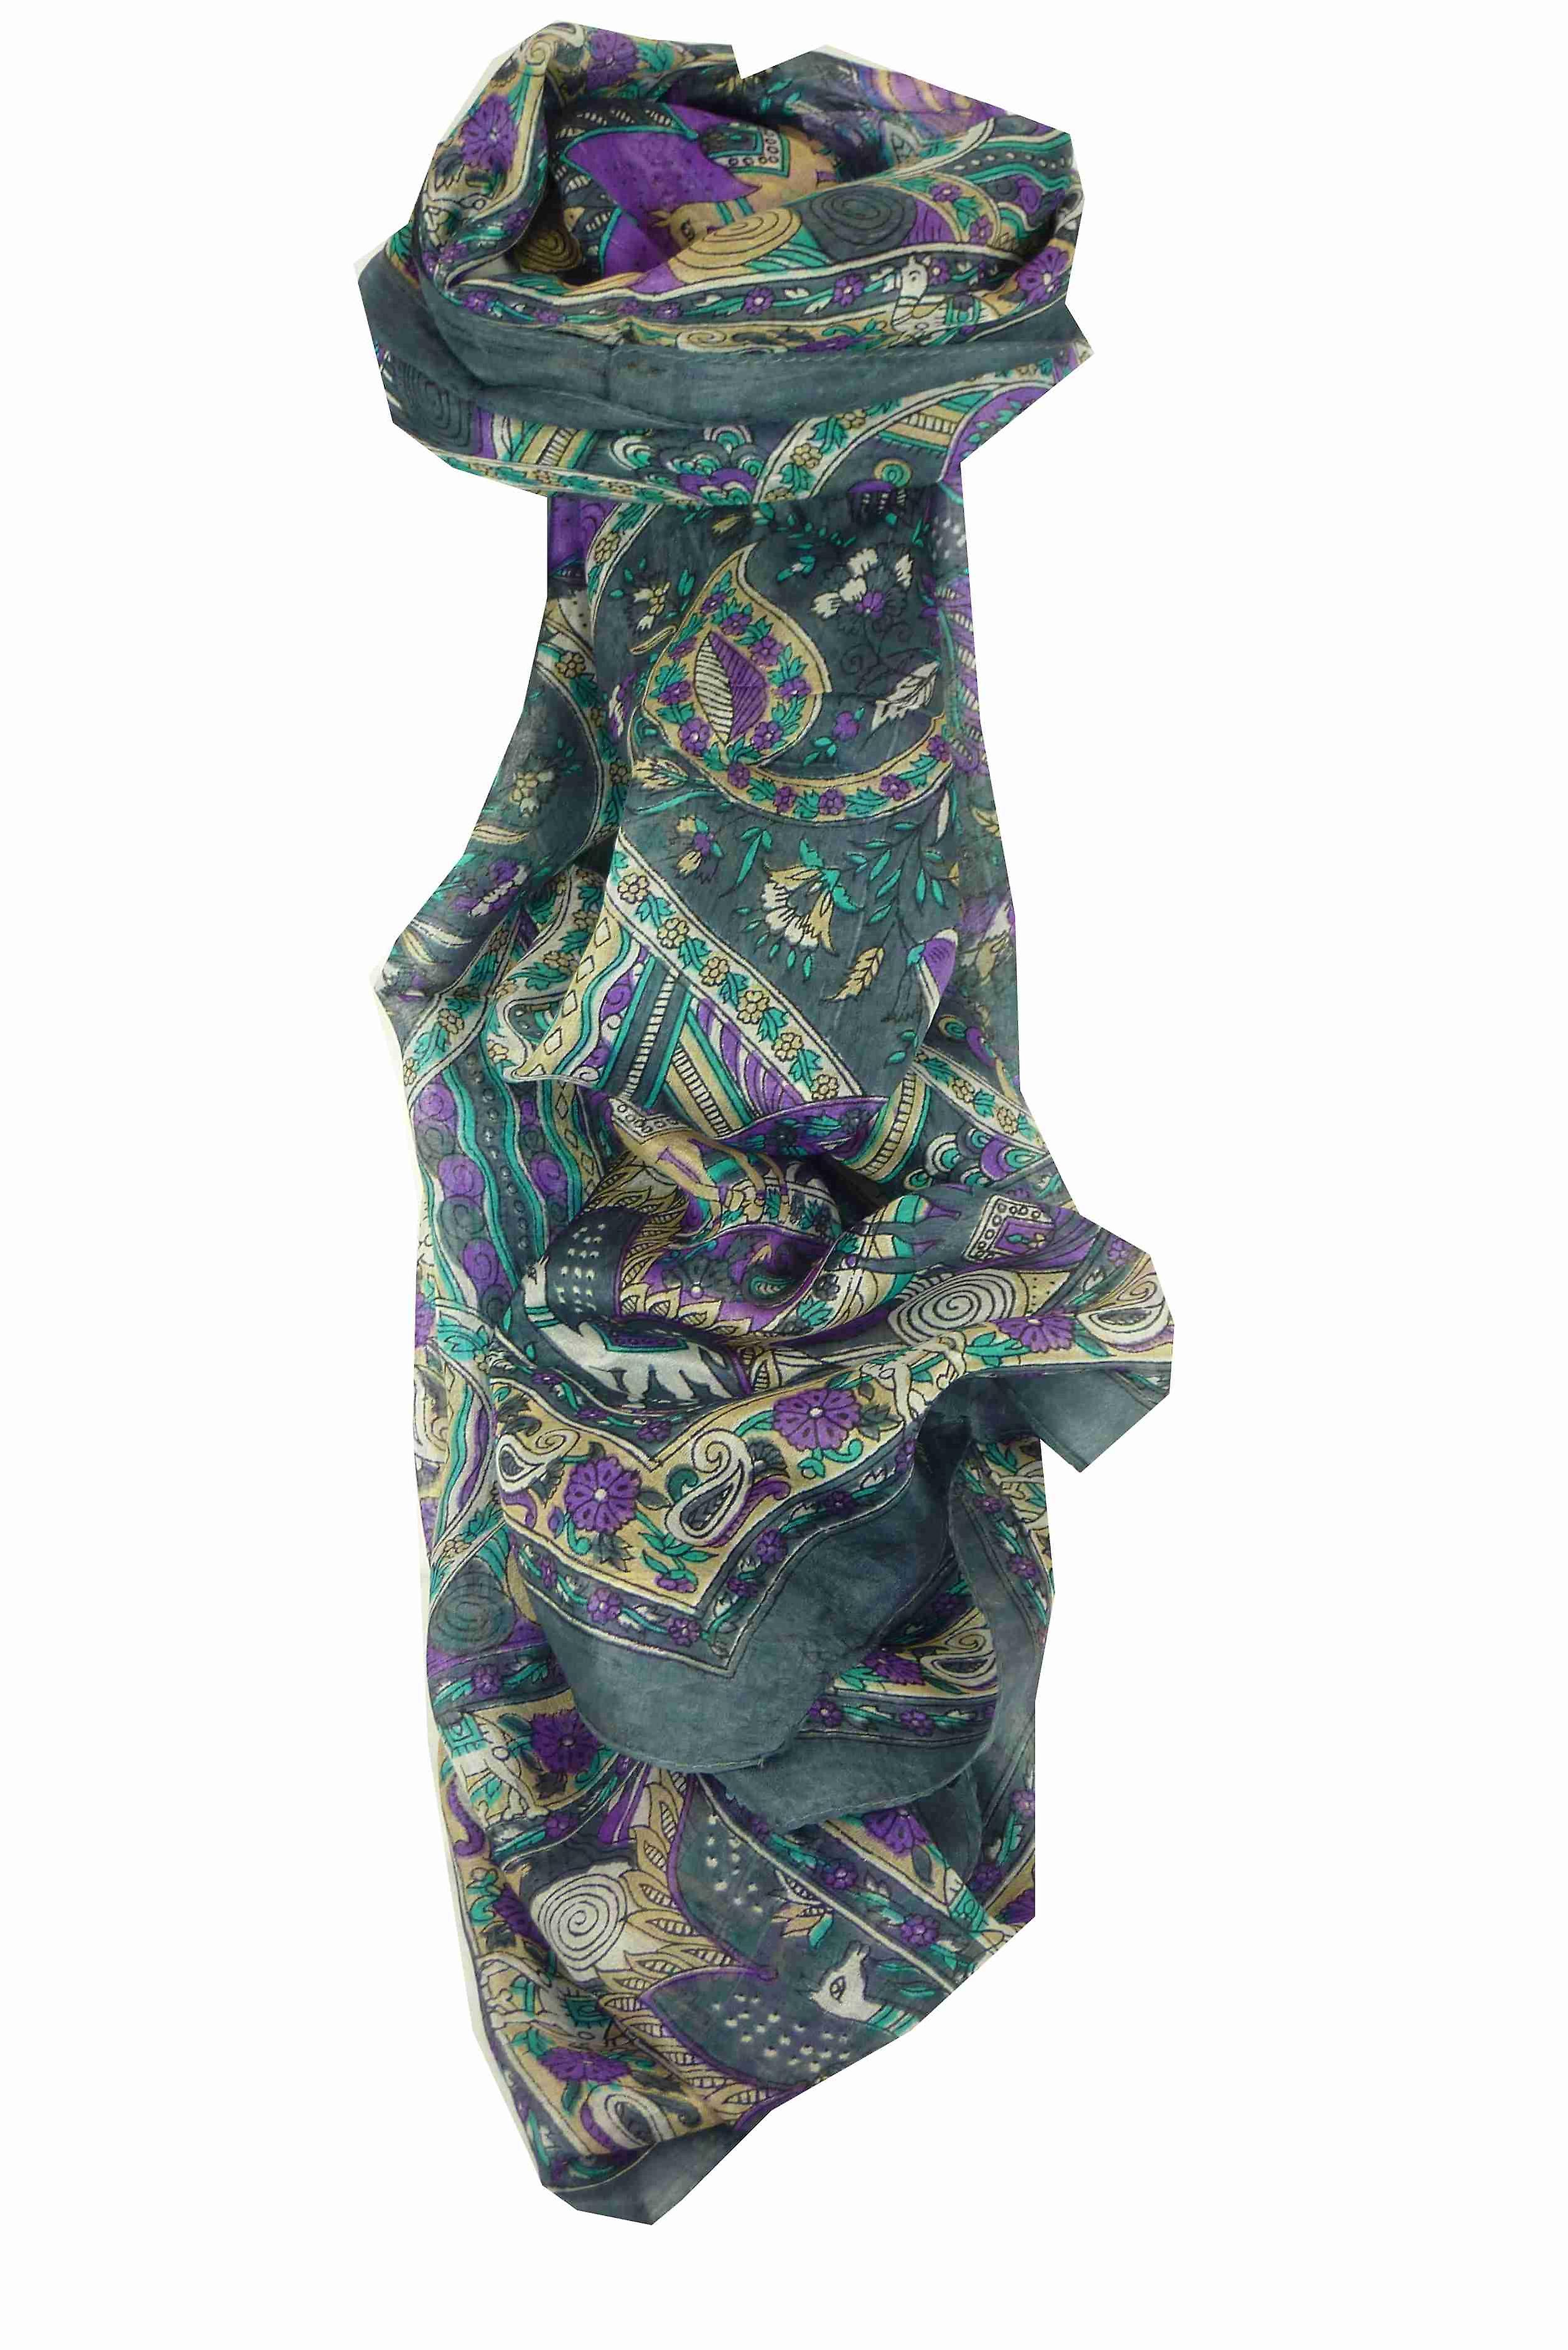 Mulberry Silk Traditional Long Scarf Lina Grey by Pashmina & Silk